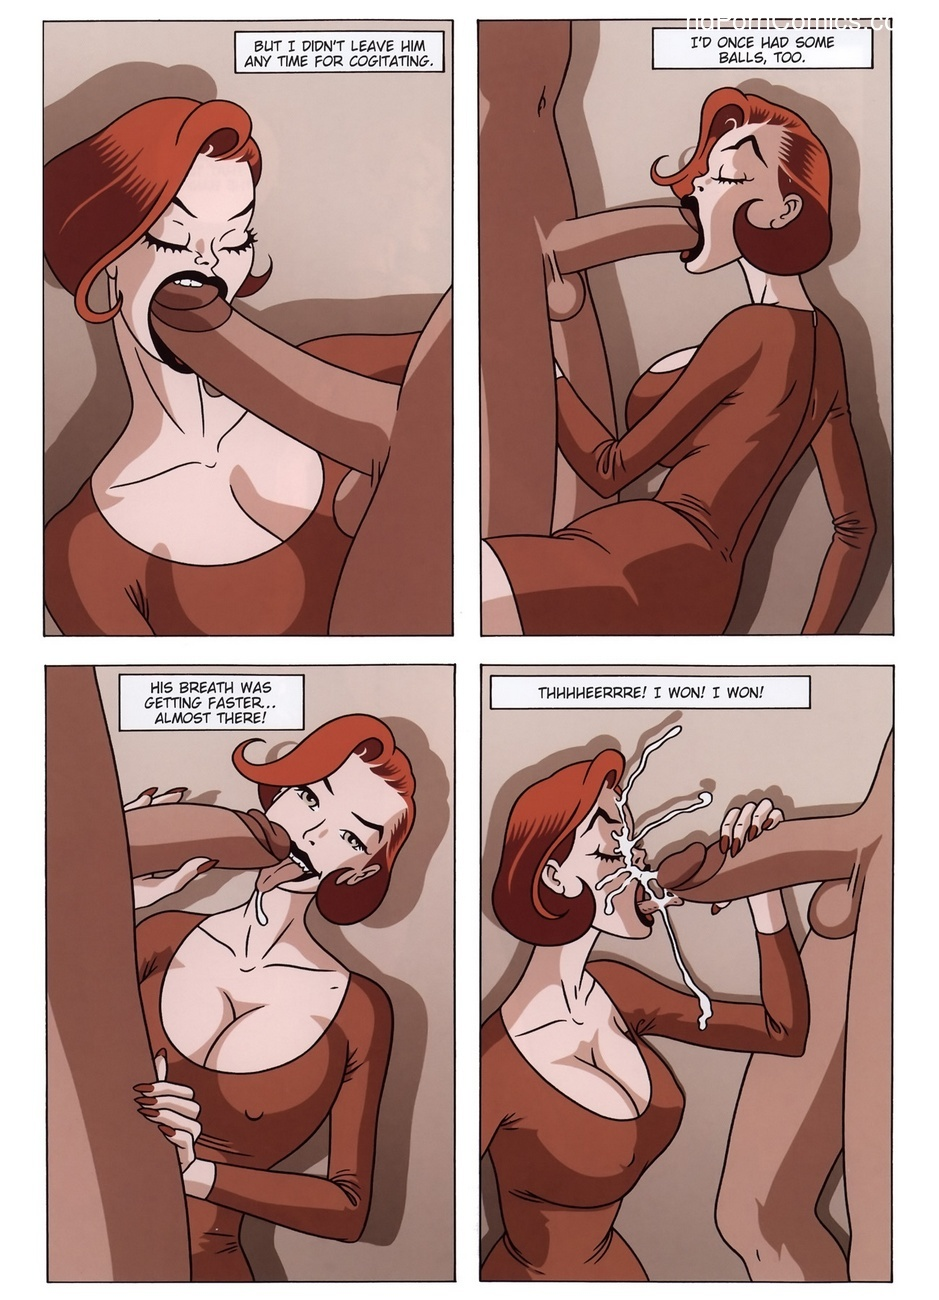 The 110 Blowjobs 44 free sex comic